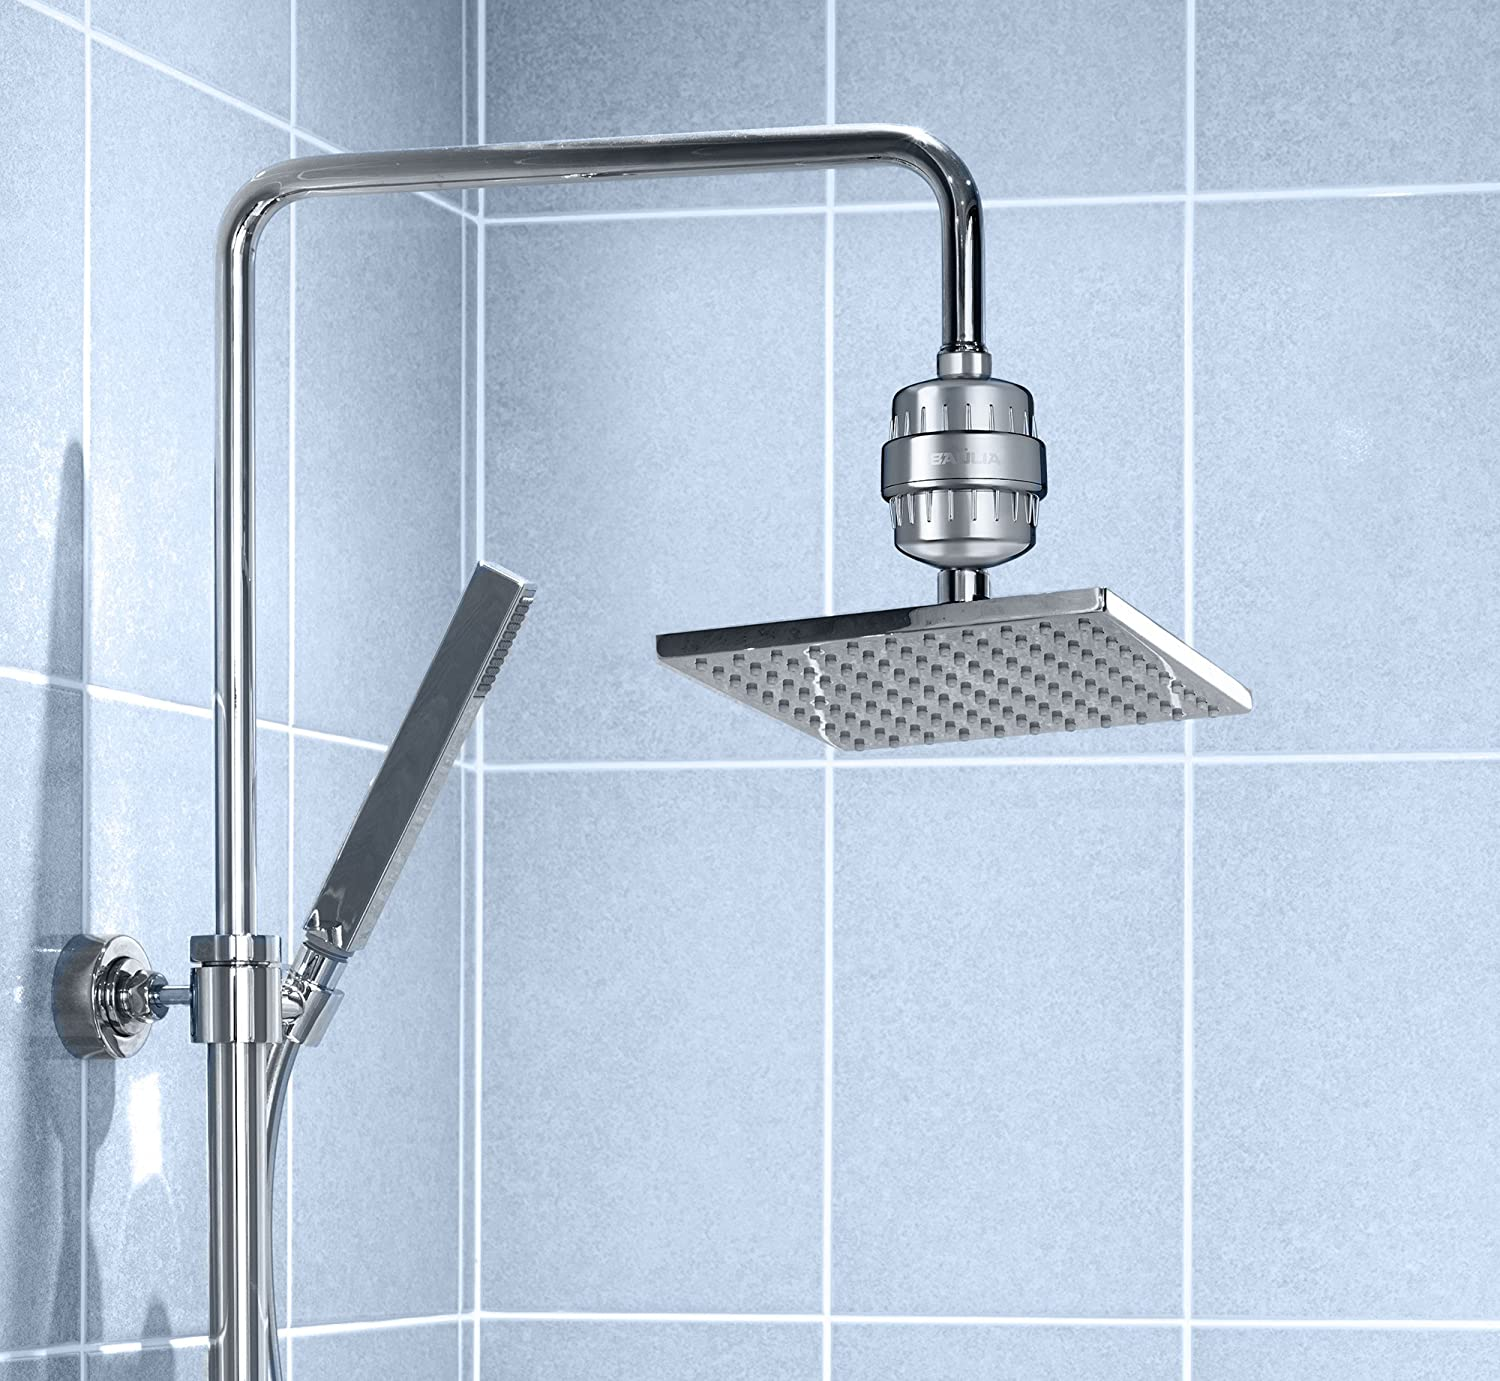 Baulia 10-Stage Shower Water Filter - Easy Installation for Any ...